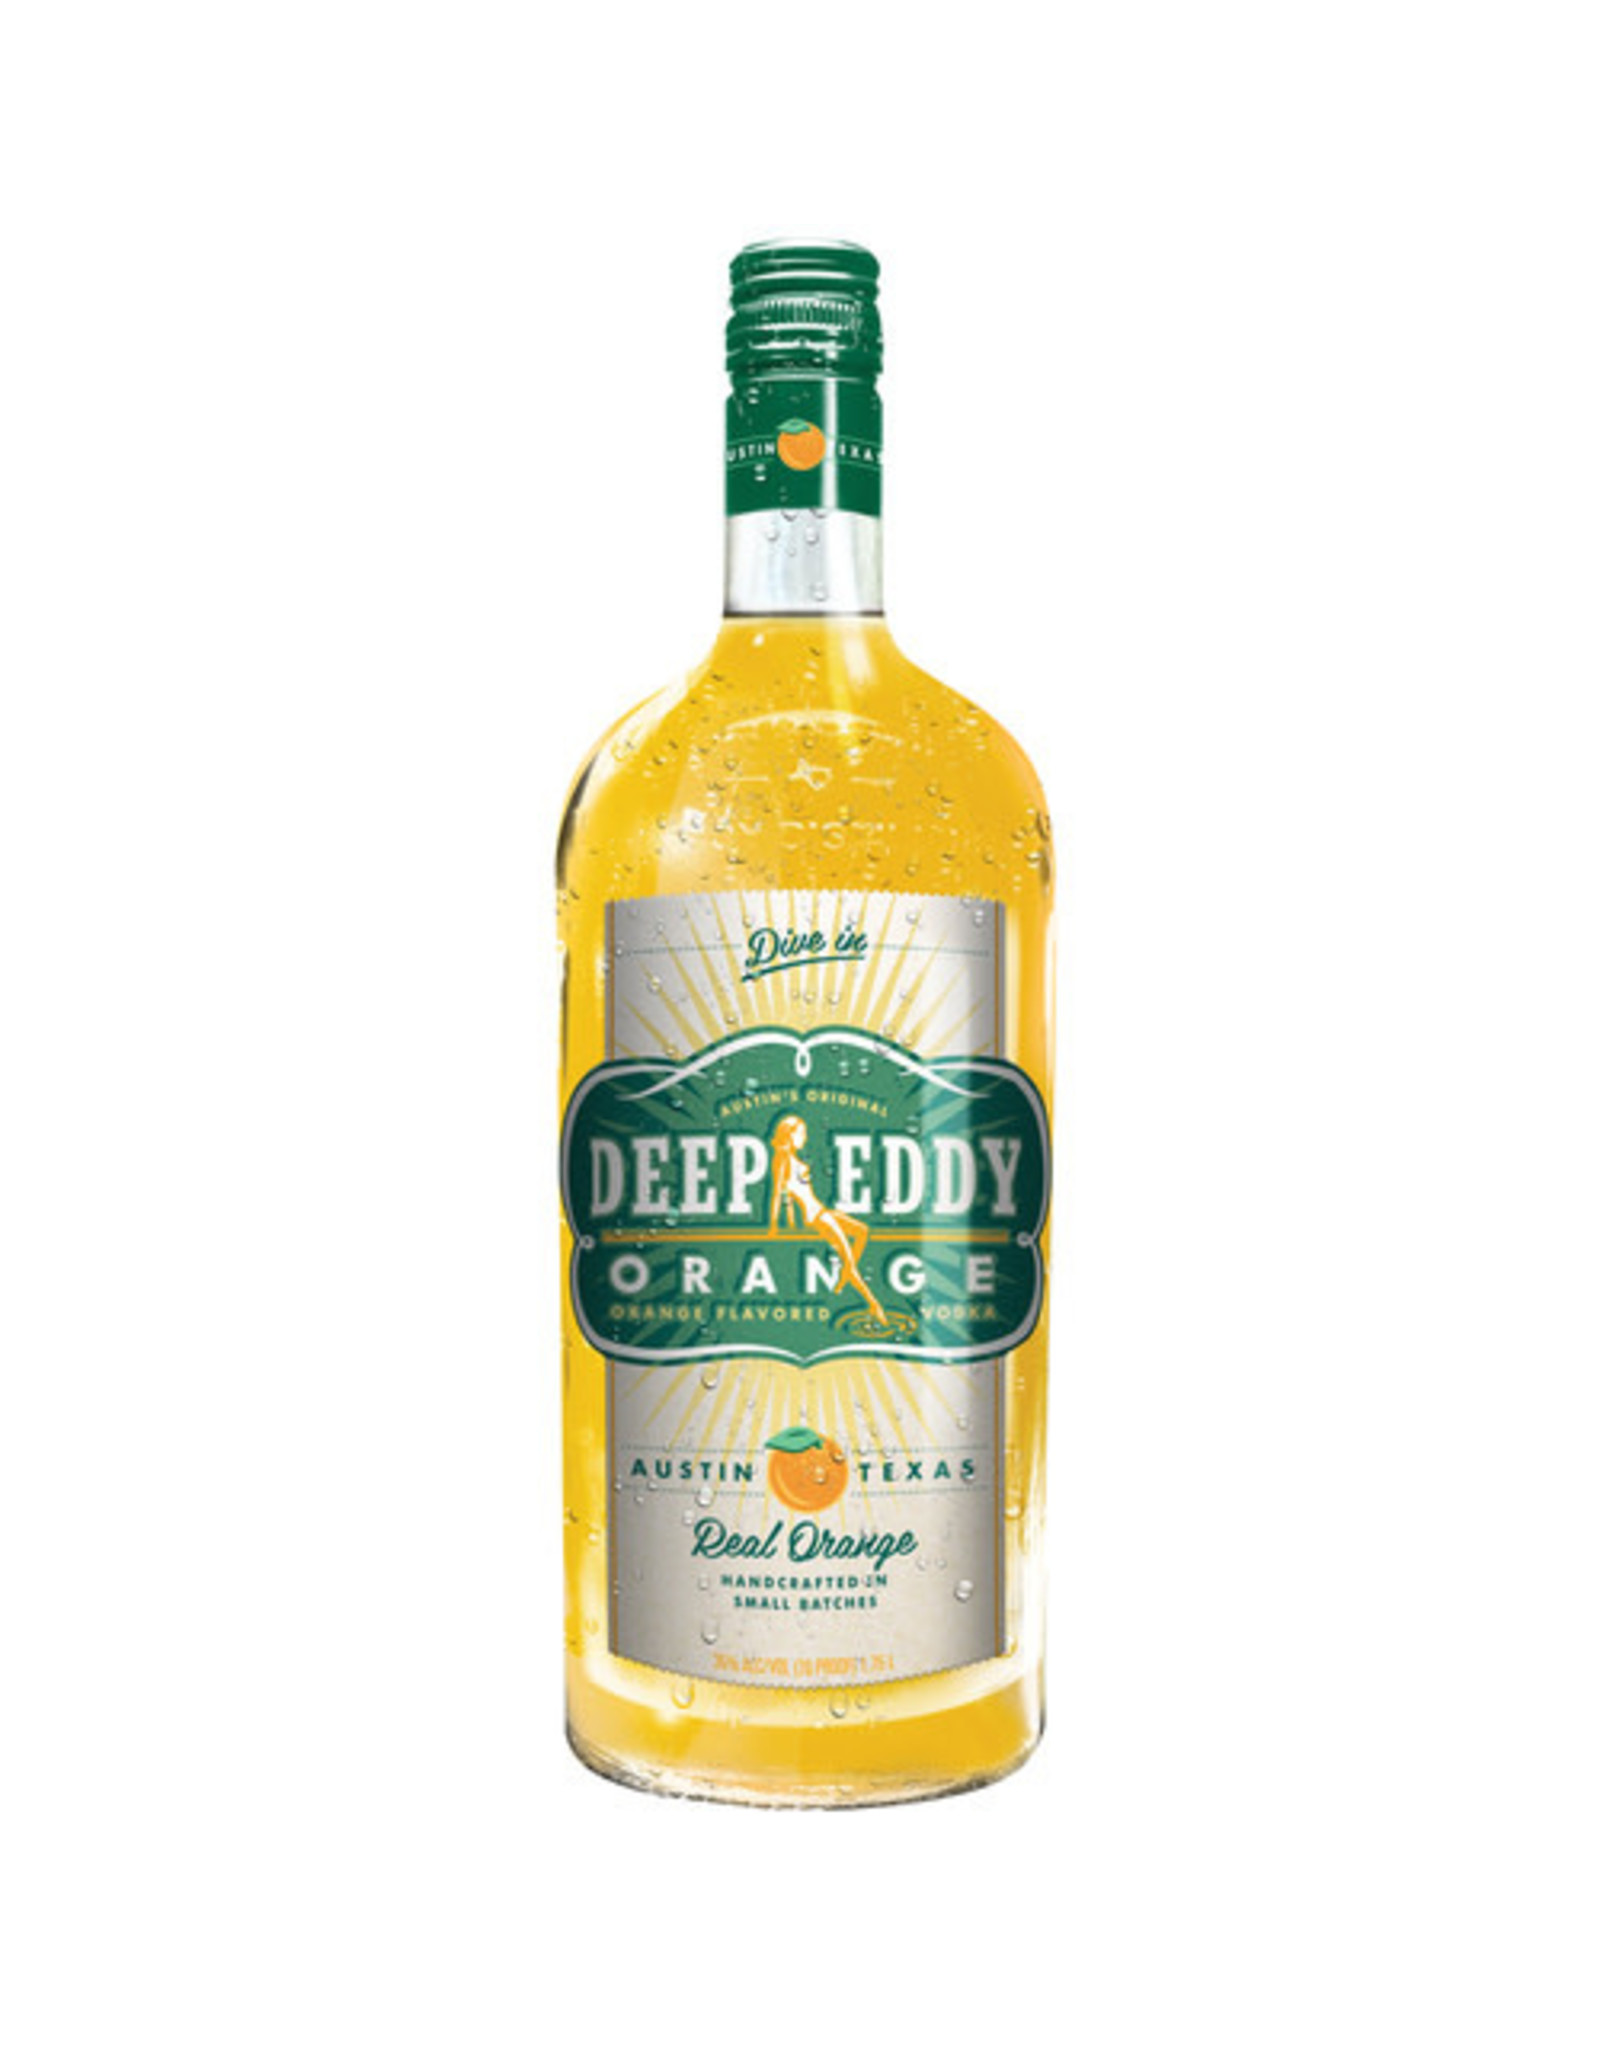 DEEP EDDY ORANGE VODKA 1.75L